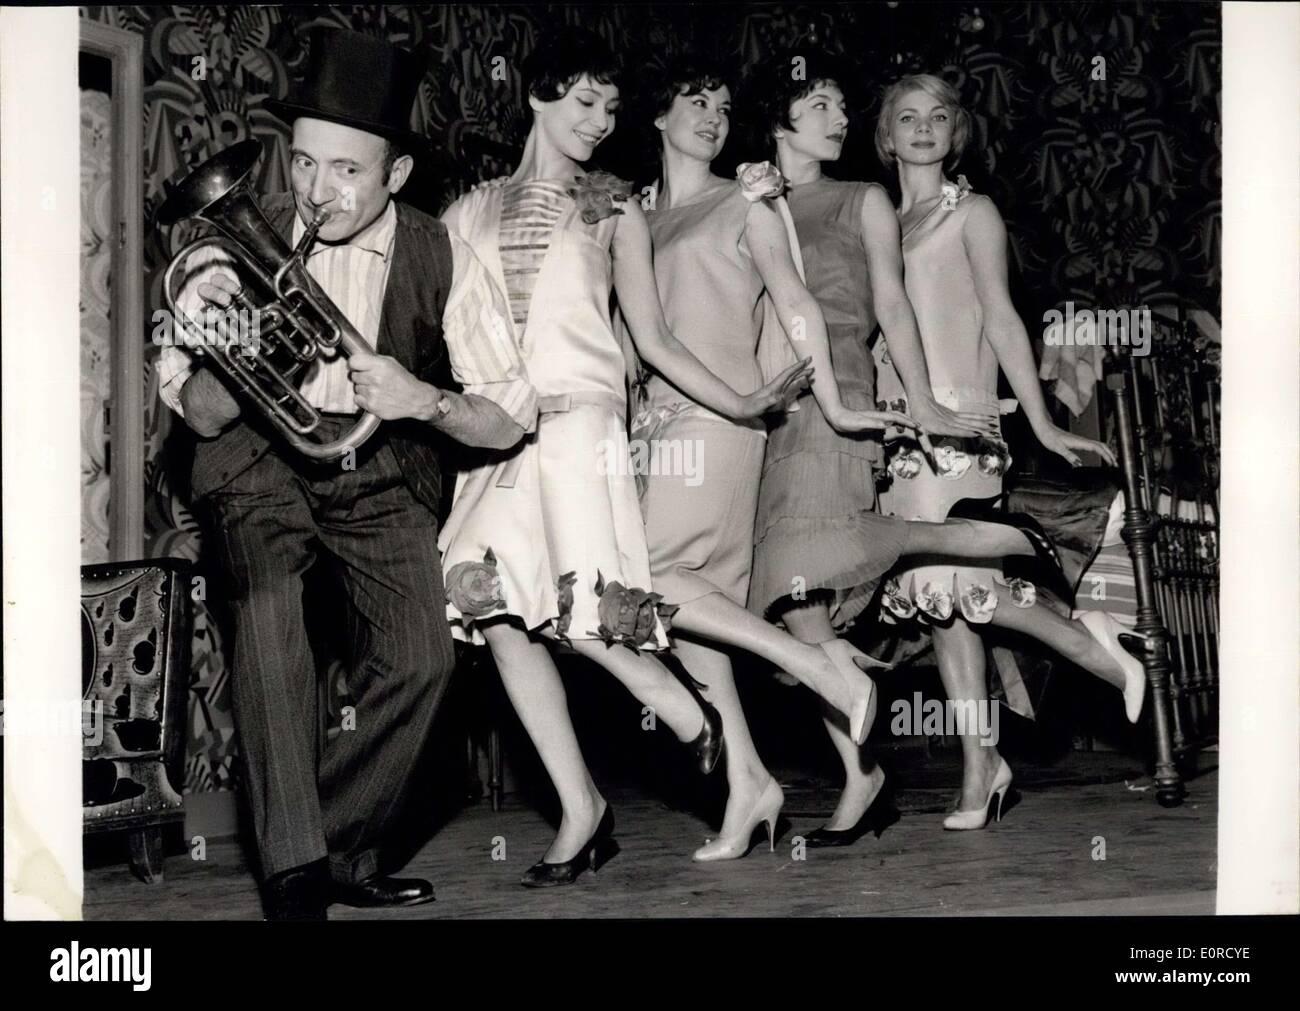 Jan. 20, 1959 - Top Hats Early Century Style In Fashion Again: But it is only on the stage. Olivier Houssenot, the well-known Paris stage producer is now showing ''The three Top-Hats'' a comedy by a Spanish playwright Miguel Mihura in French adaption. Photo shows Olivier Houssenot with four actresses appearing on the play who are seen dancing Charleston. - Stock Image